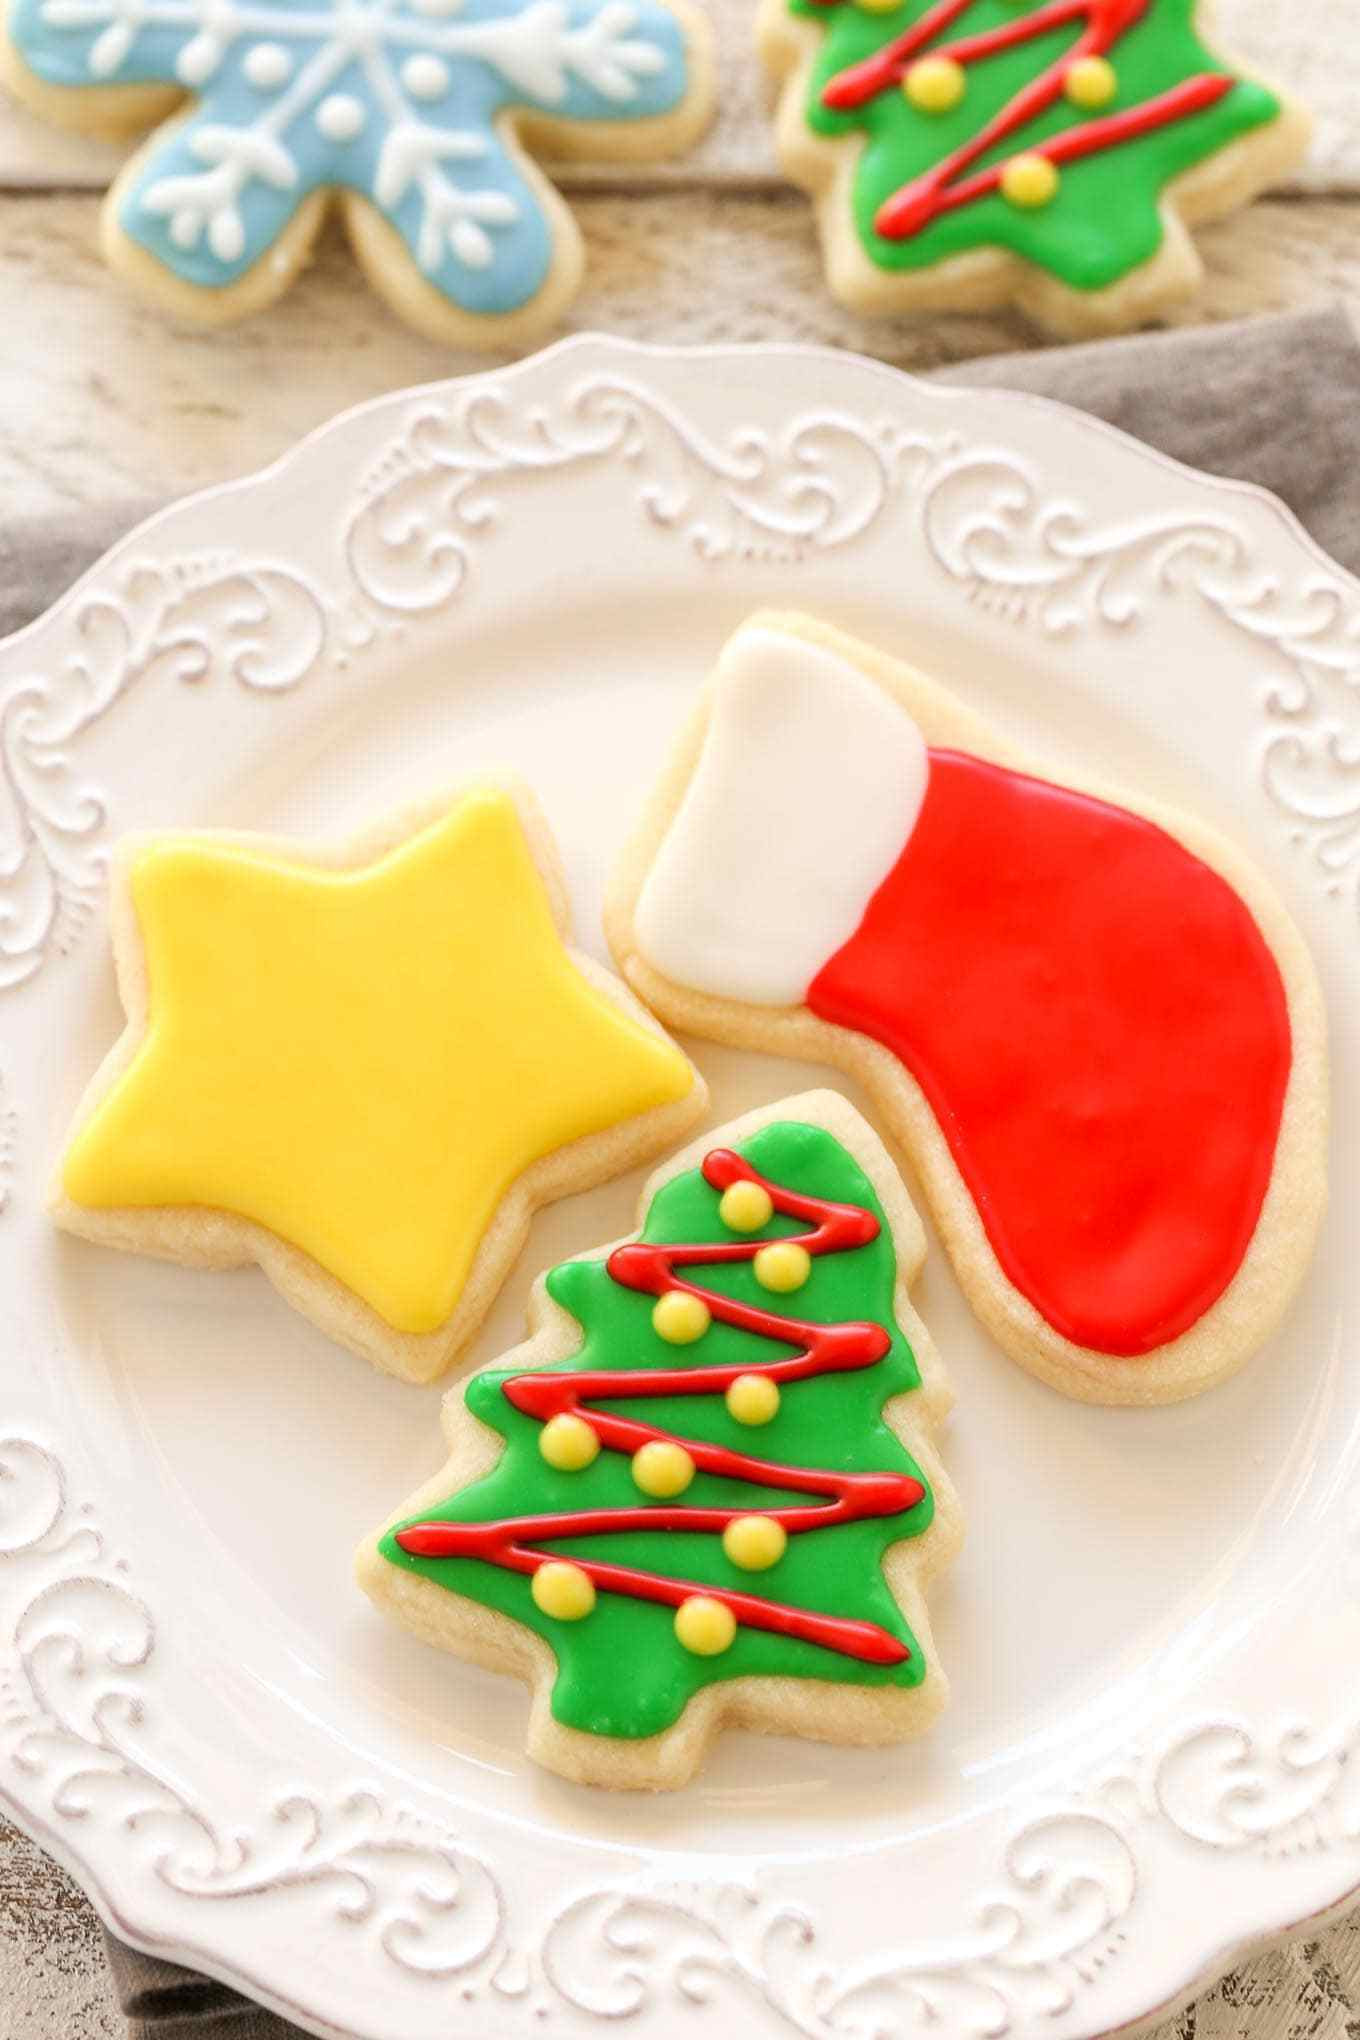 Christmas Cookie Icing Recipe  Soft Christmas Cut Out Sugar Cookies Live Well Bake ten